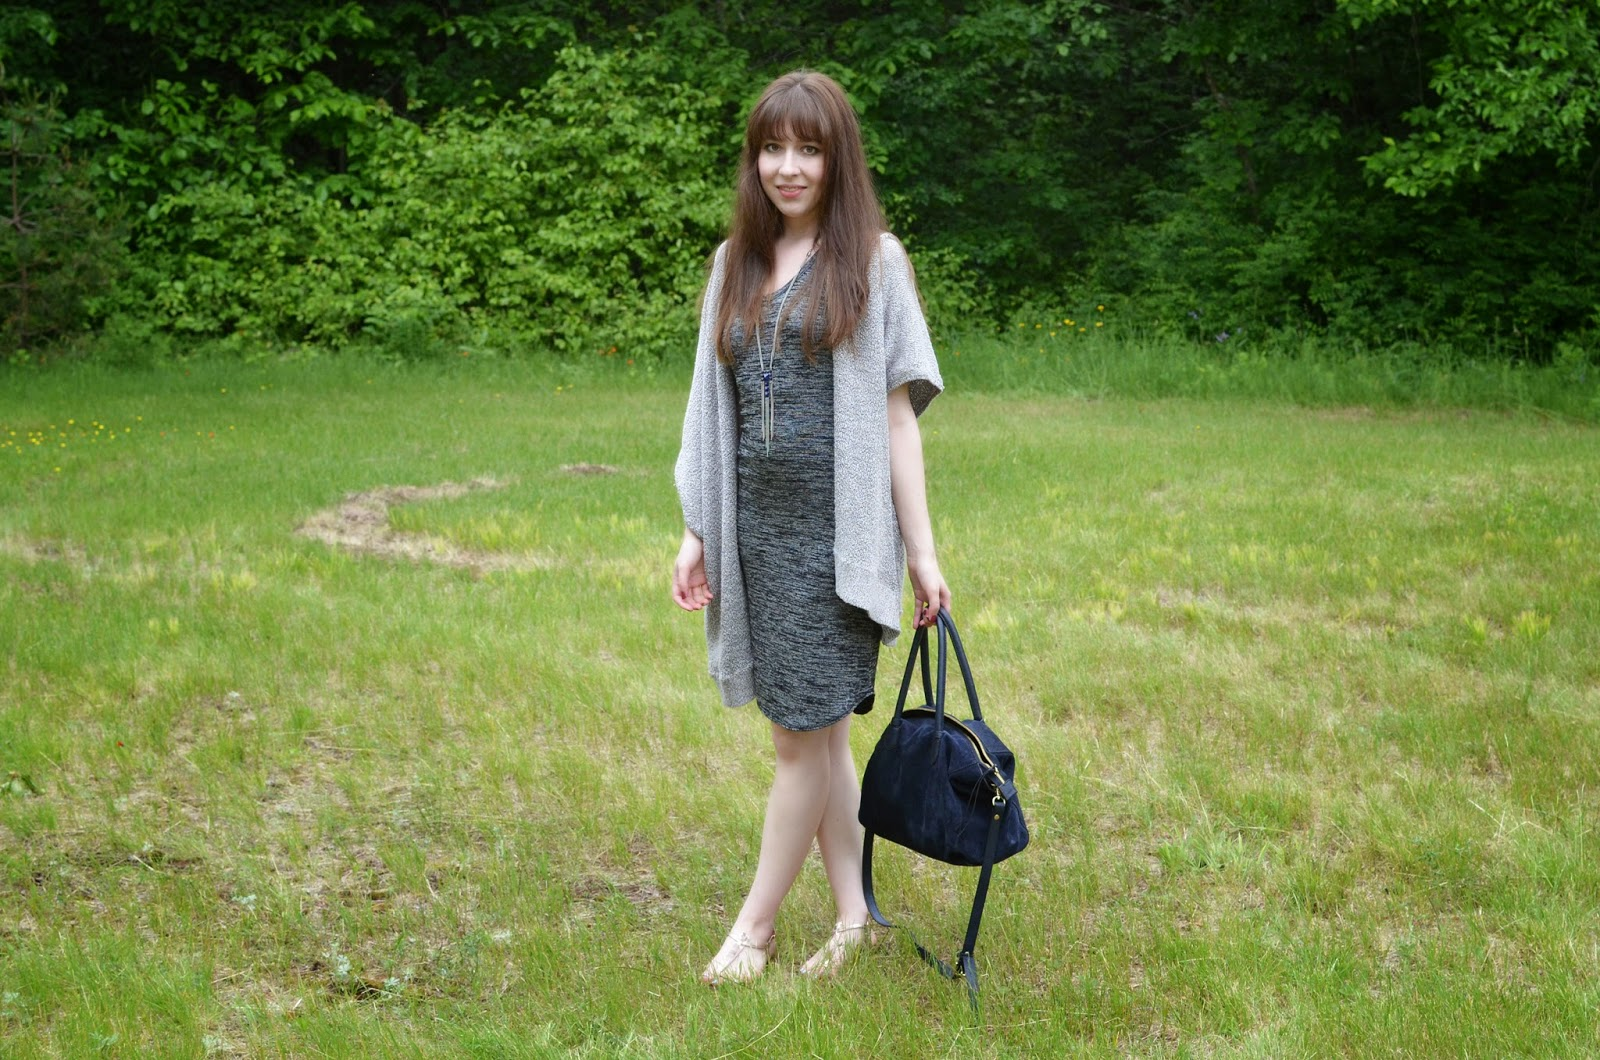 OOTD ft. Aritzia Yasmin dress, Community Ionic Cape, my navy Zara bag, and Sam Edelman GiGi sandals